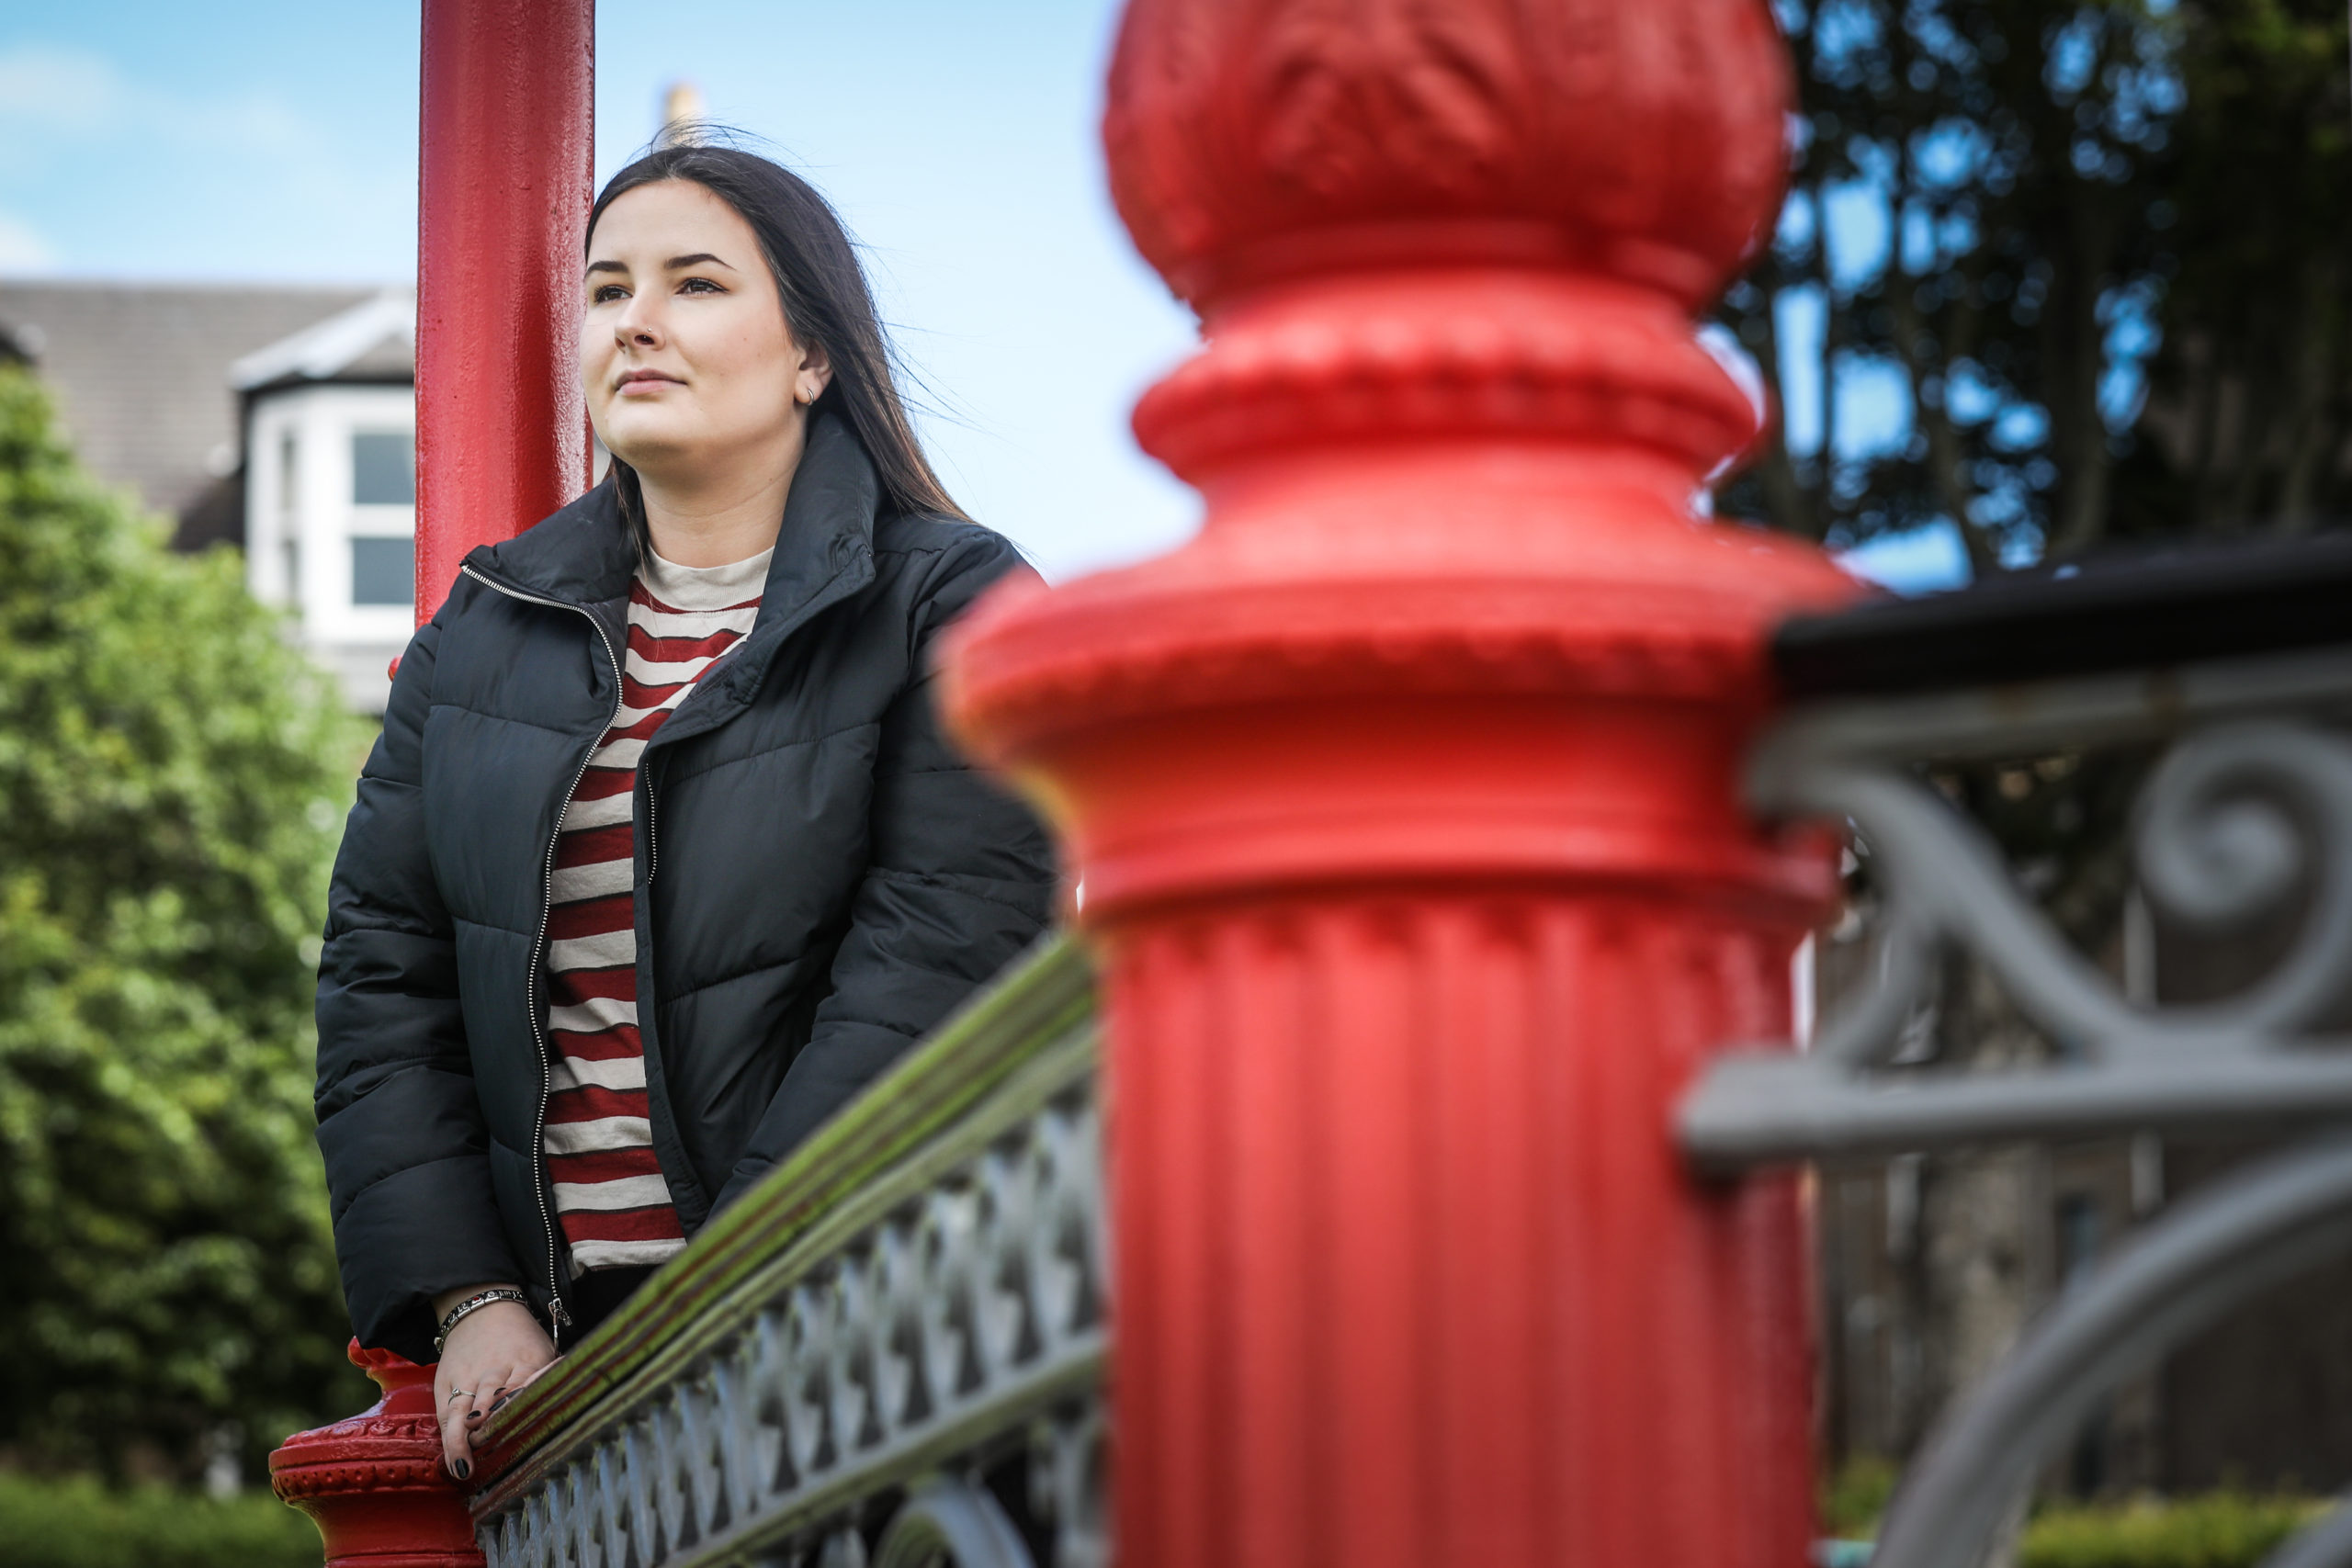 Stephanie Carney is a mental health campaigner after losing her friend Conor to suicide two years ago.